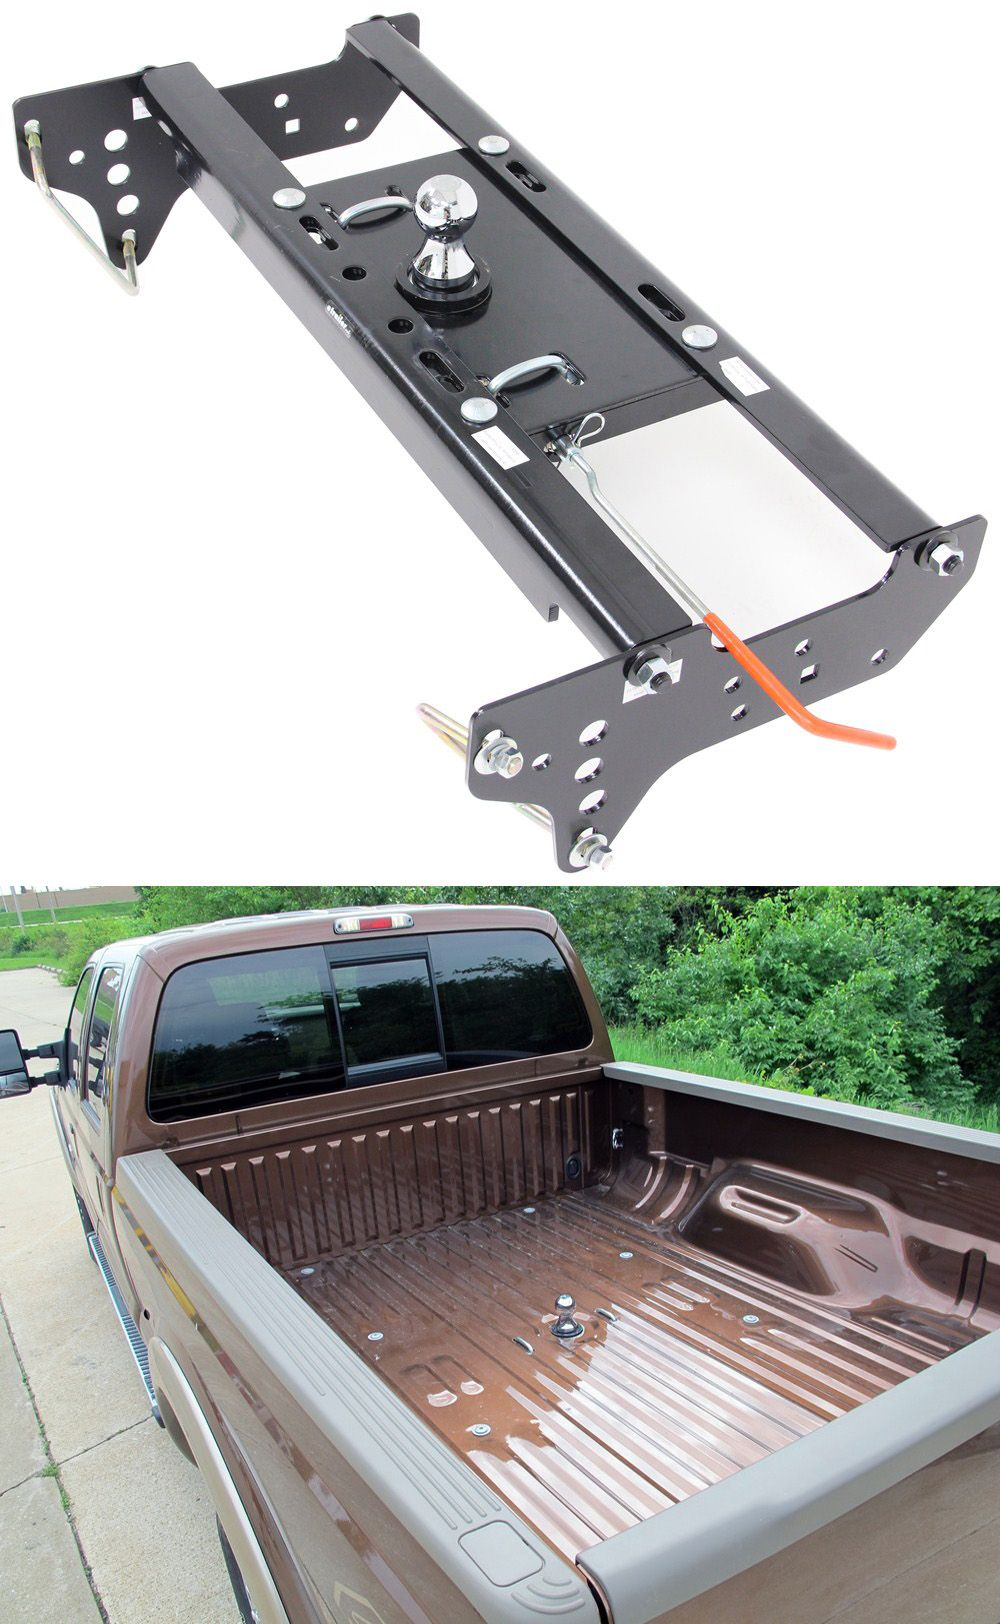 hight resolution of for your f 250 f 350 underbed gooseneck trailer hitch with installation kit wheel well accessible handle makes it easy to engage and disengage